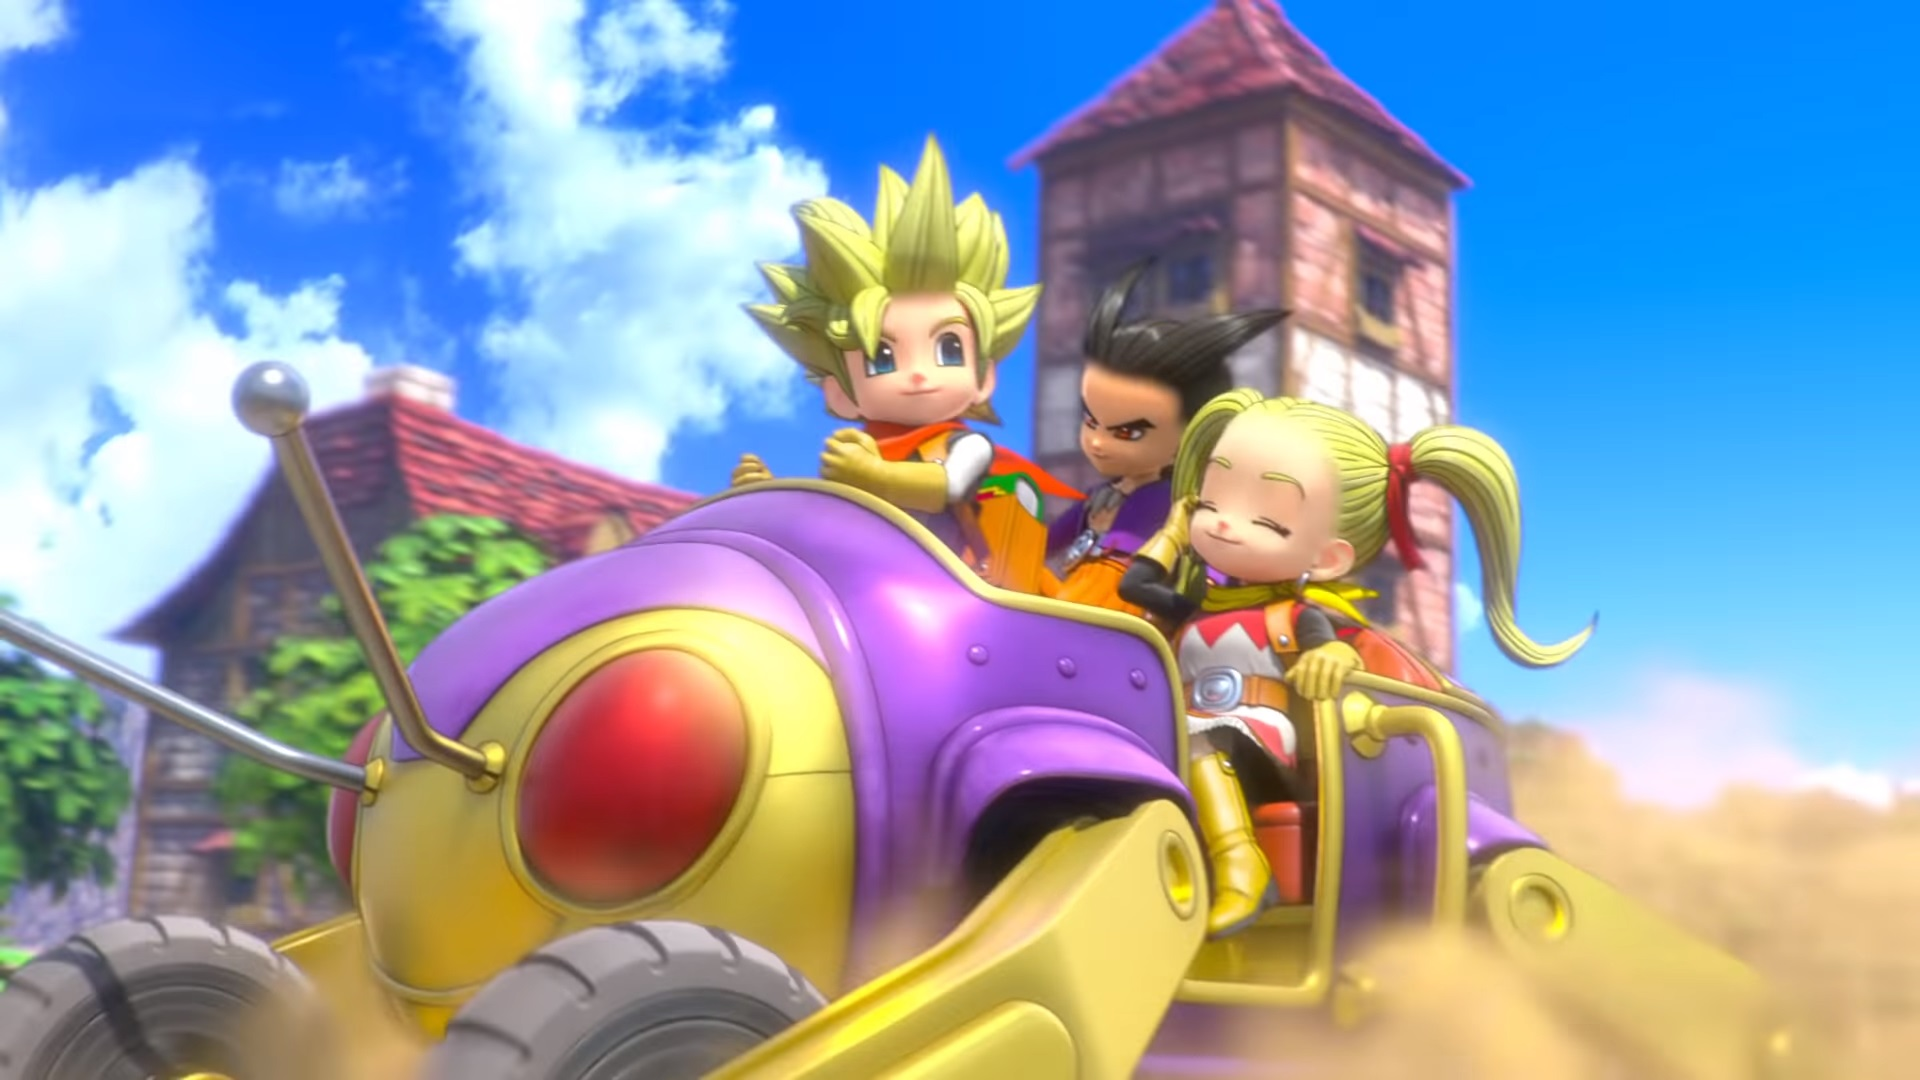 Dragon Quest Builders 2 Monster Recruitment Guide: Everything We Know About Dragon Quest Builders 2 (So Far